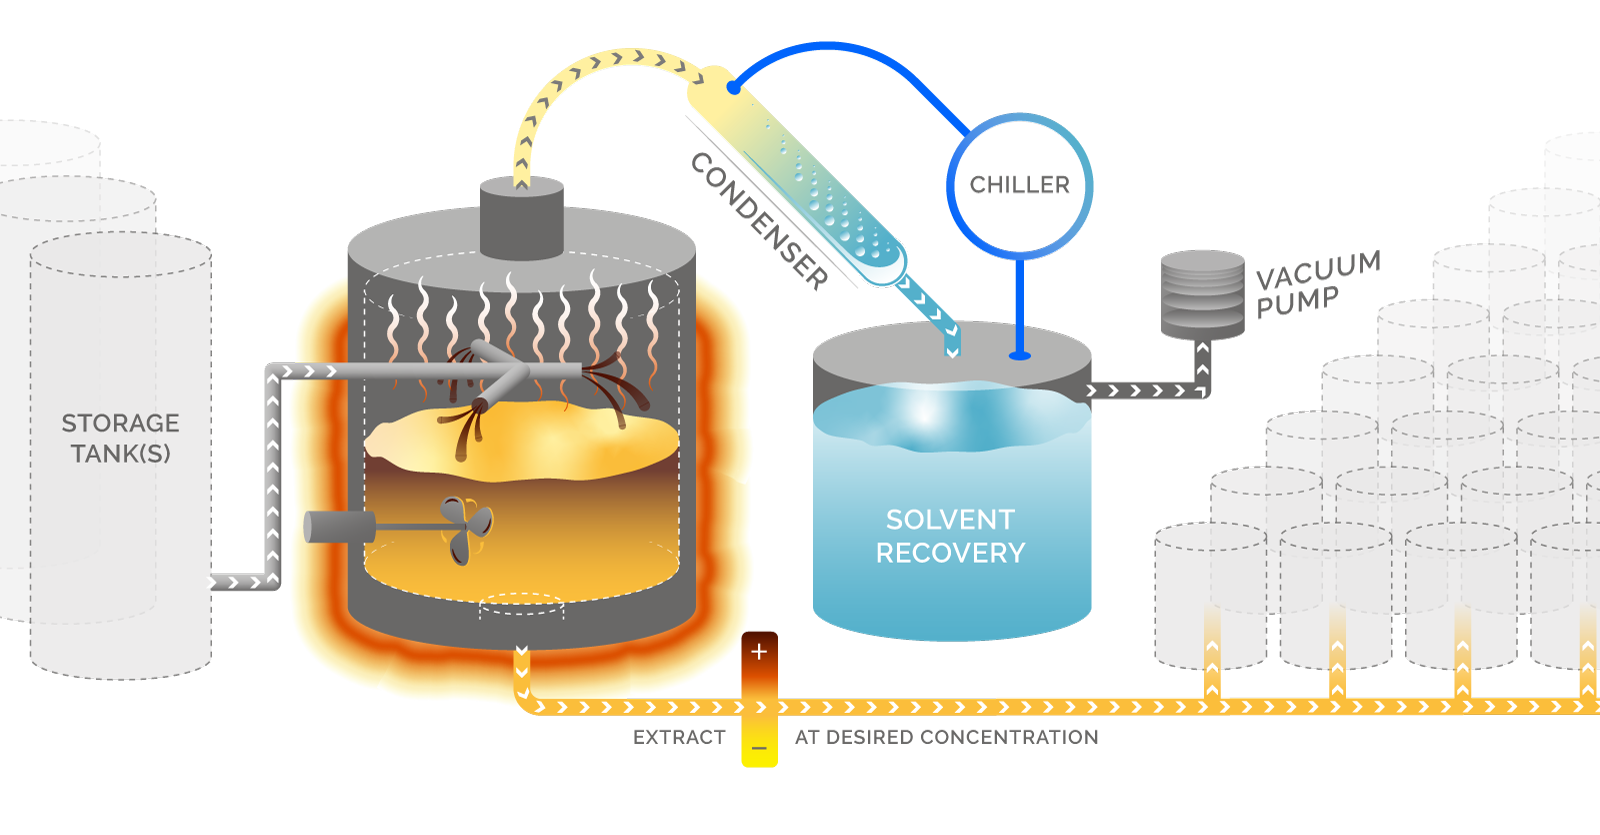 Ethanol Solvent Recovery Diagram - Eden Labs